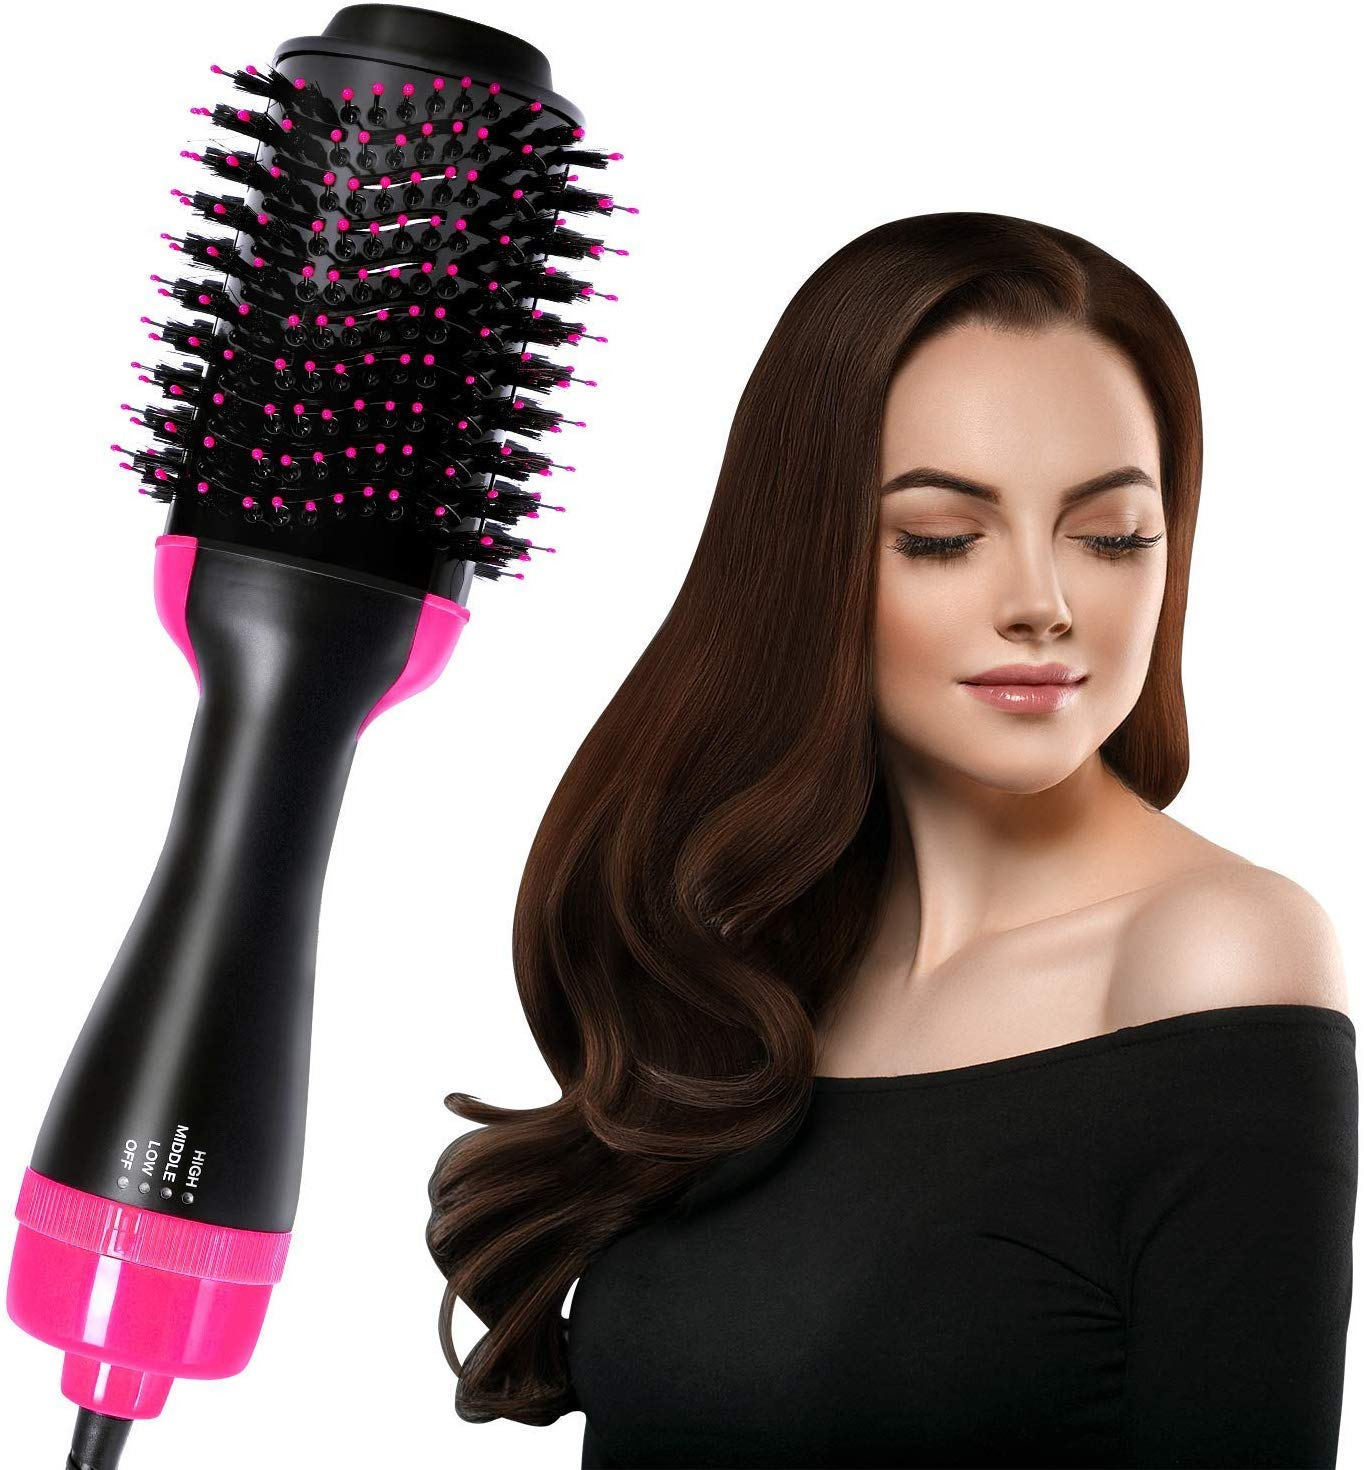 Hair Dryer Brush, ElekBest One Step 3 in 1 Hot Air Comb with Negative Ionic Technology Straightener Curler Comb for All Hair Types 0808hair10 w36